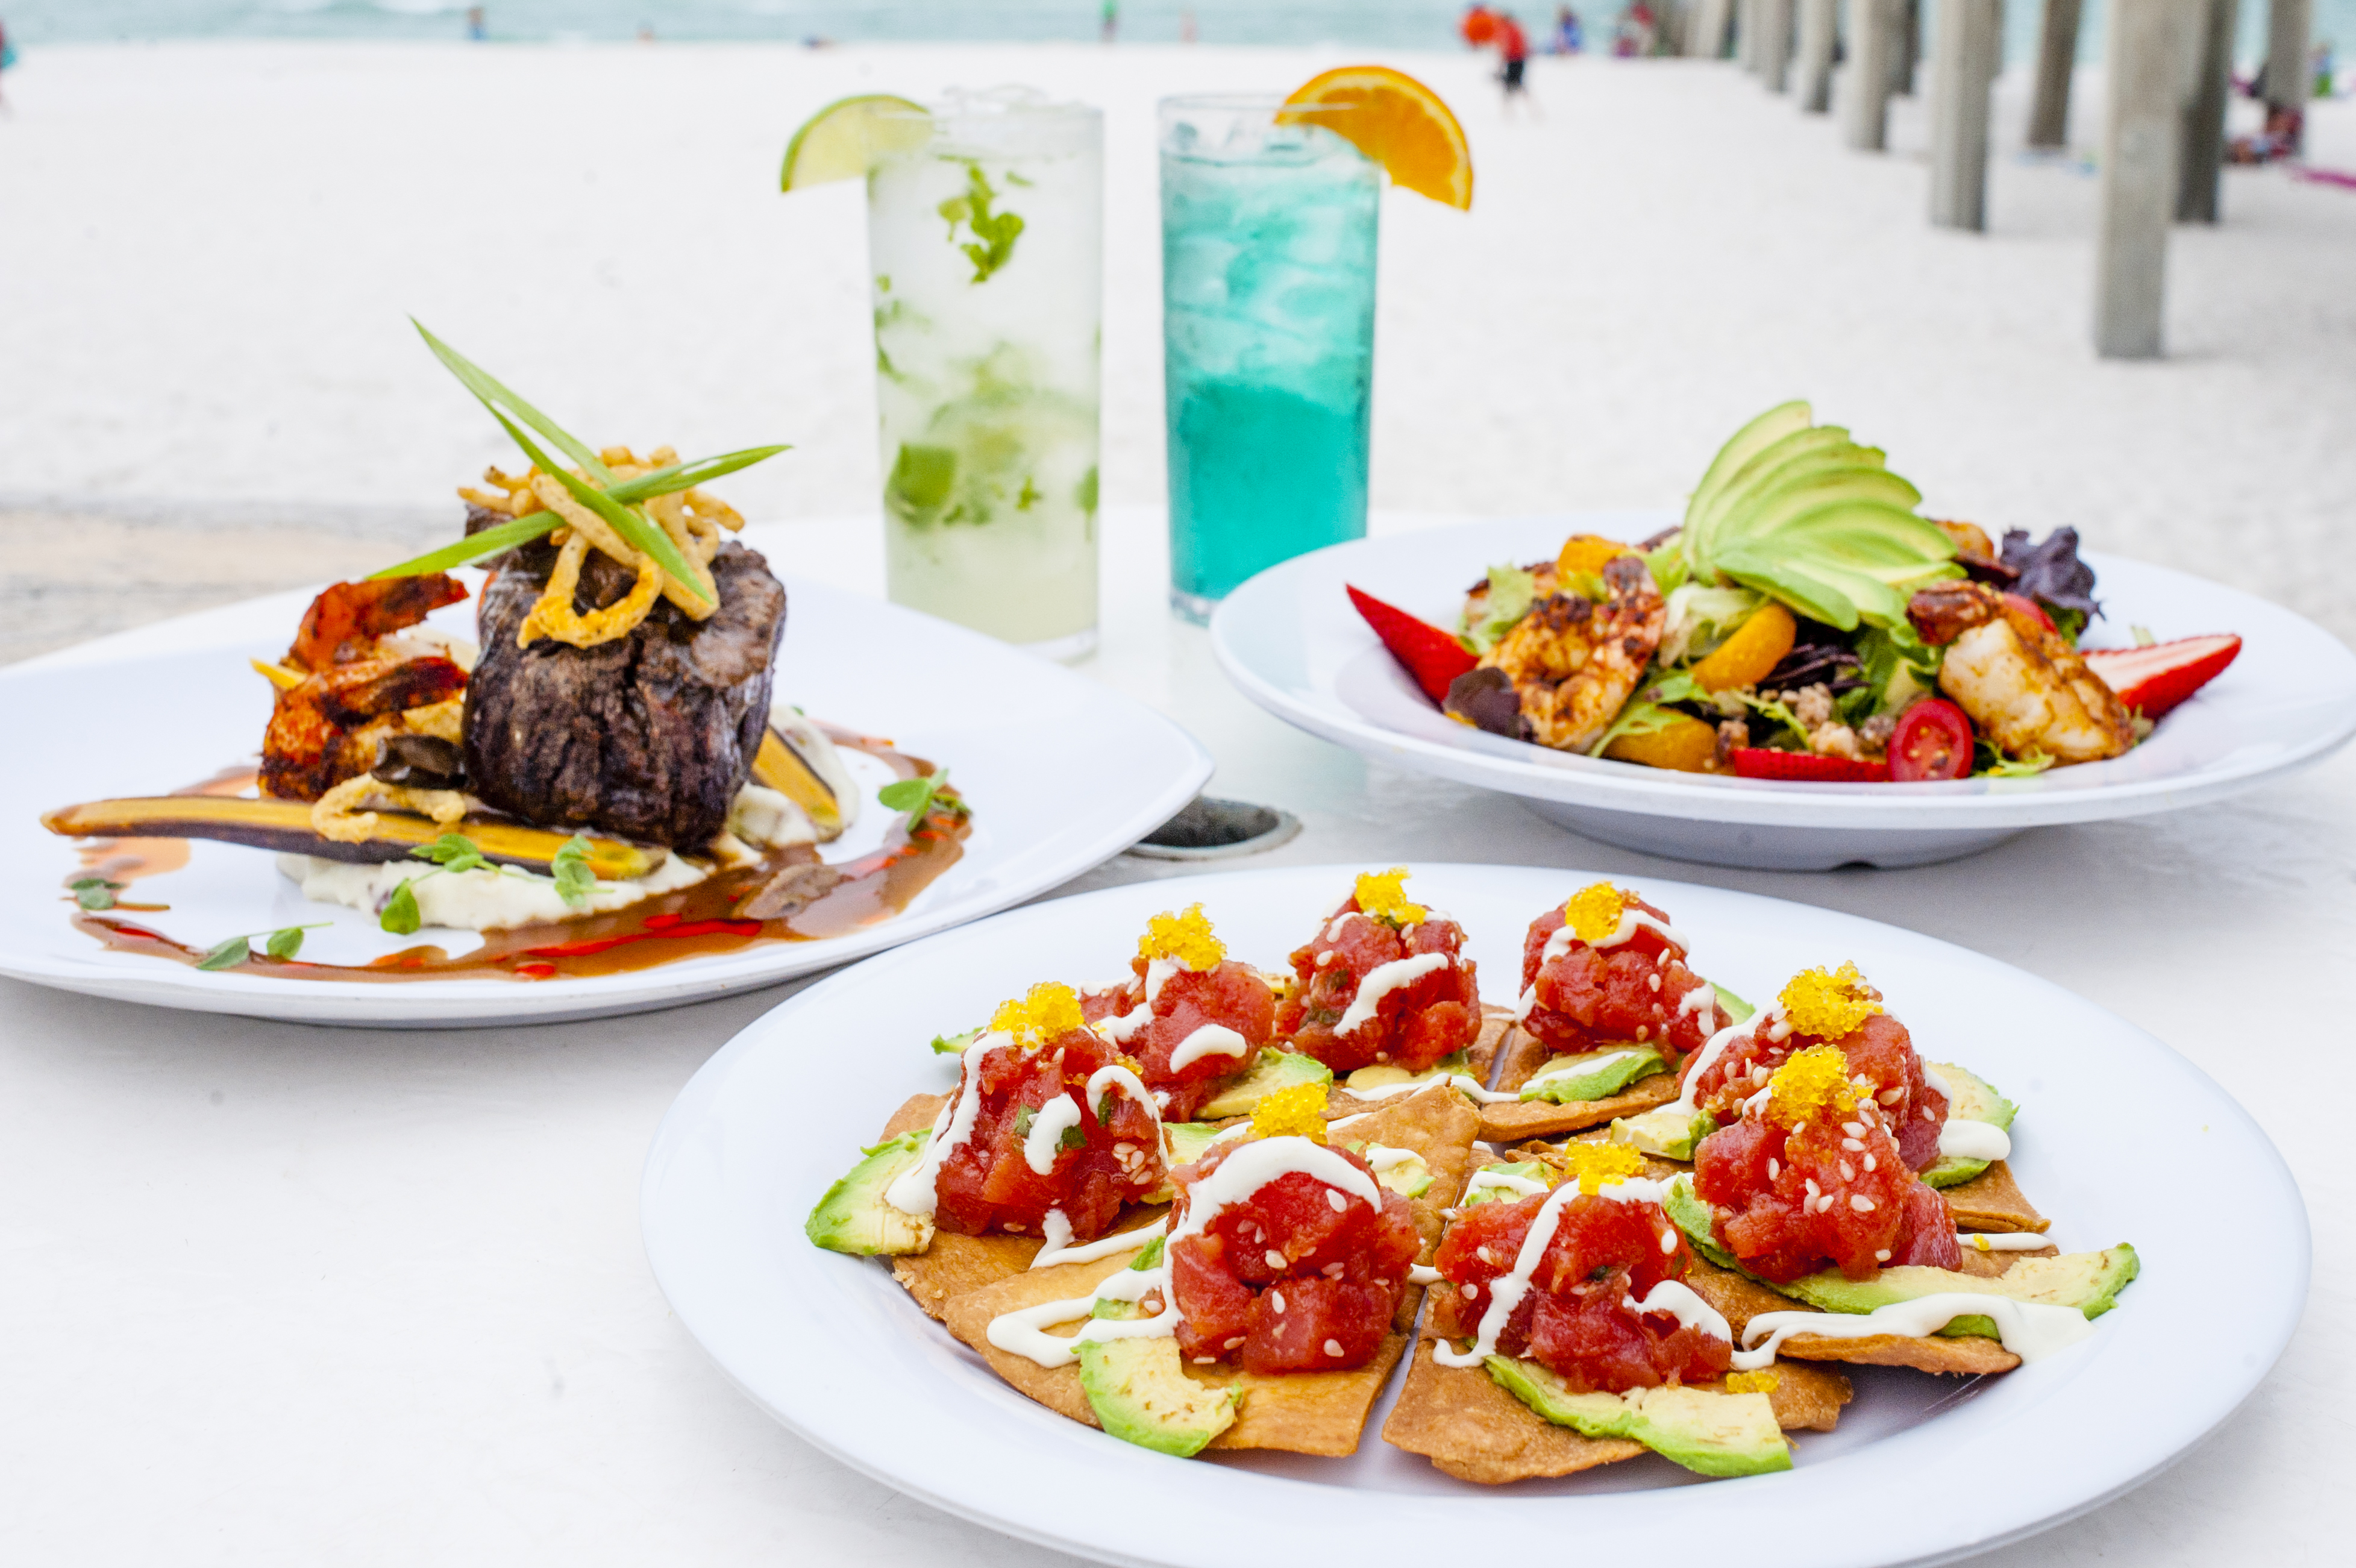 Food by the pier